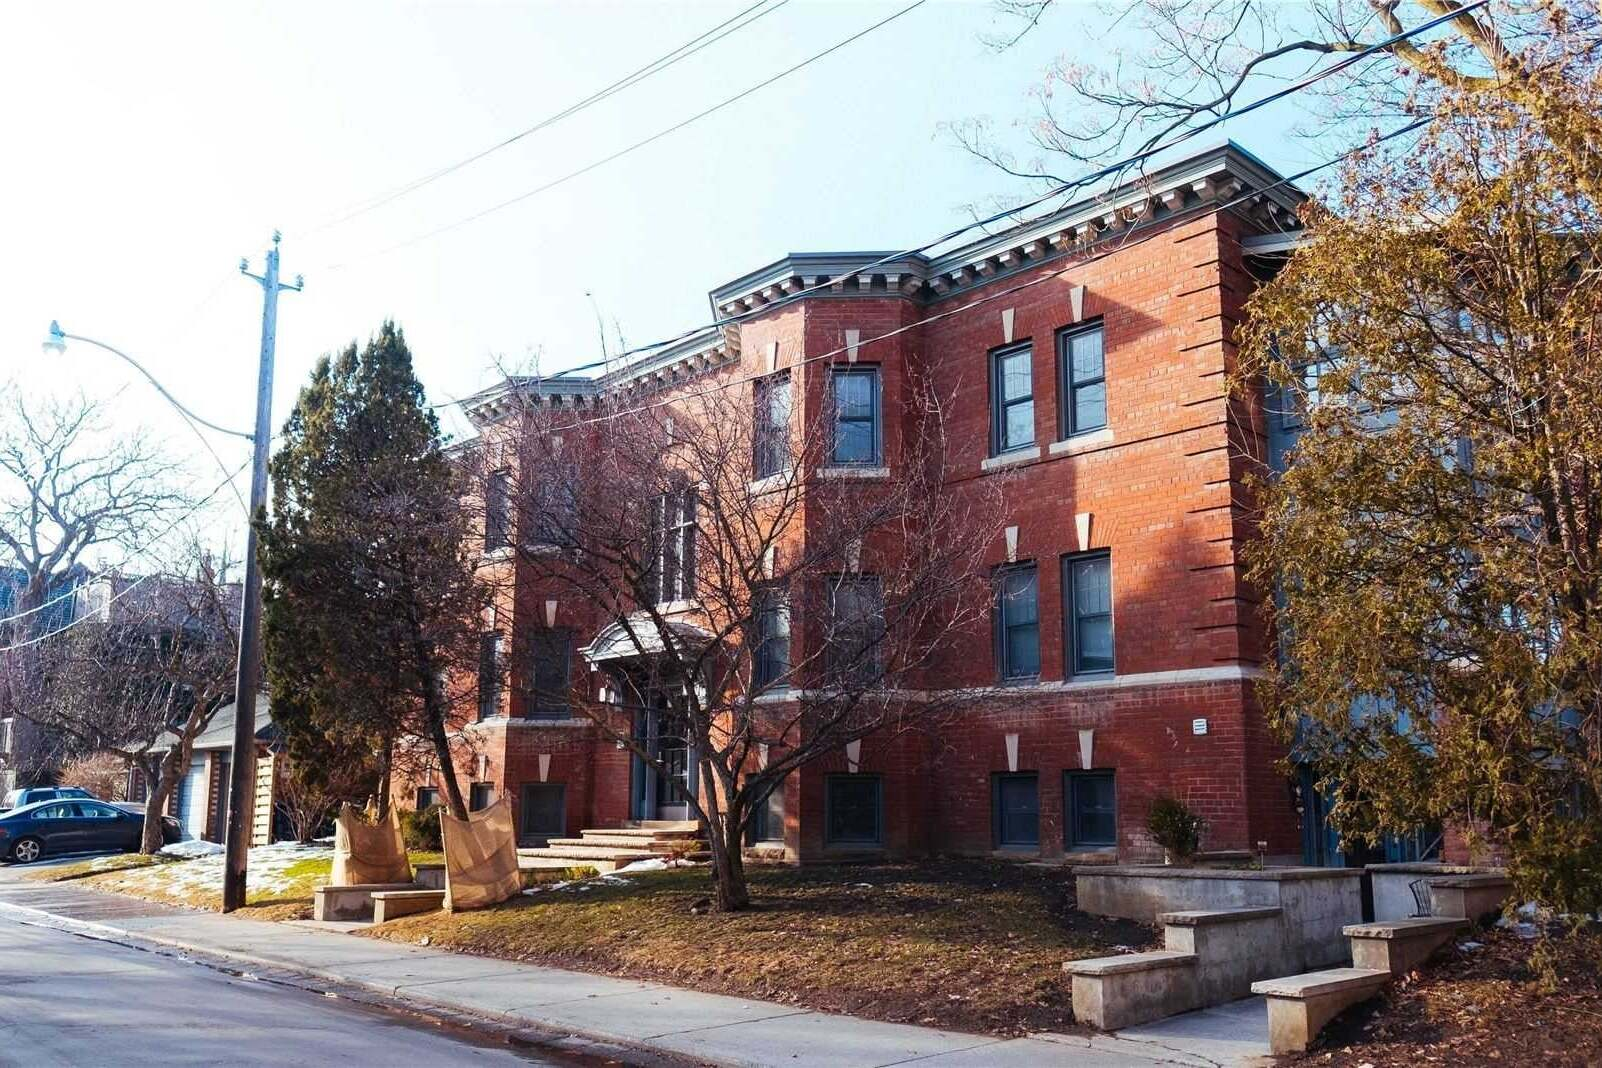 Buliding: 388 Brunswick Avenue, Toronto, ON